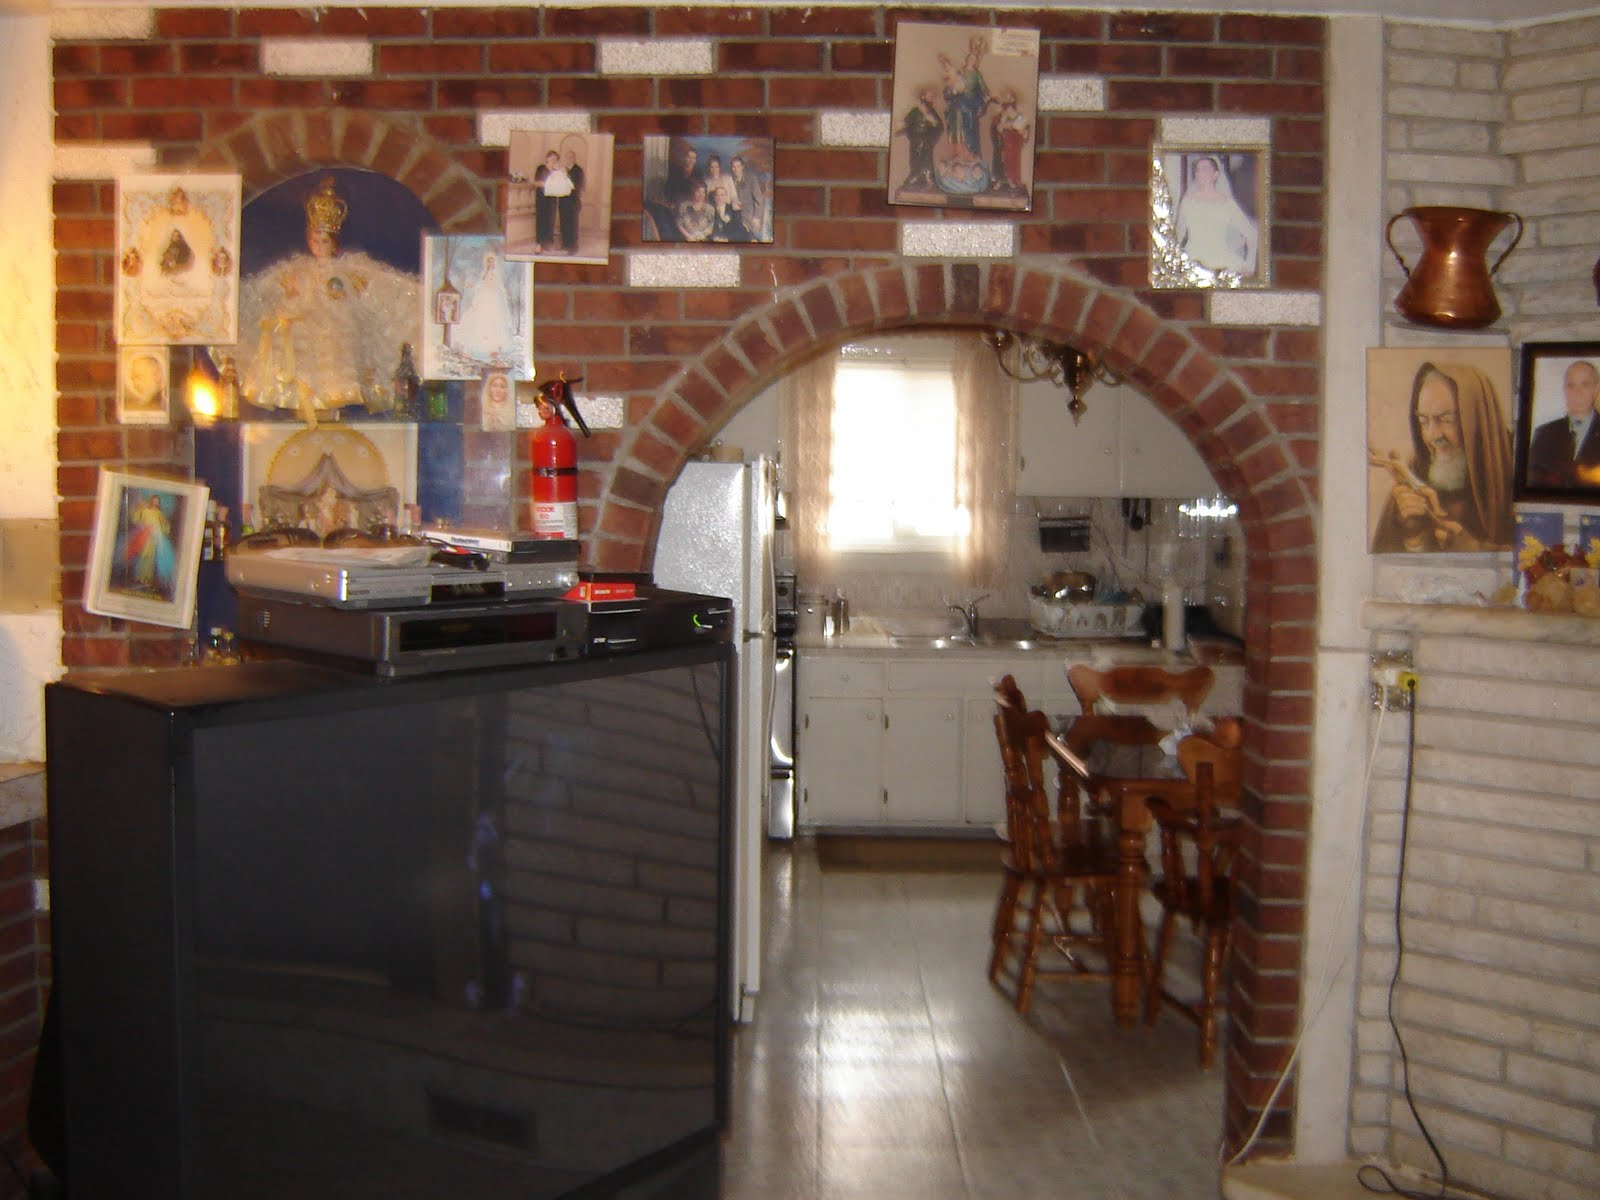 The fireplace and brick wall were added in the early 1980s. The  title=